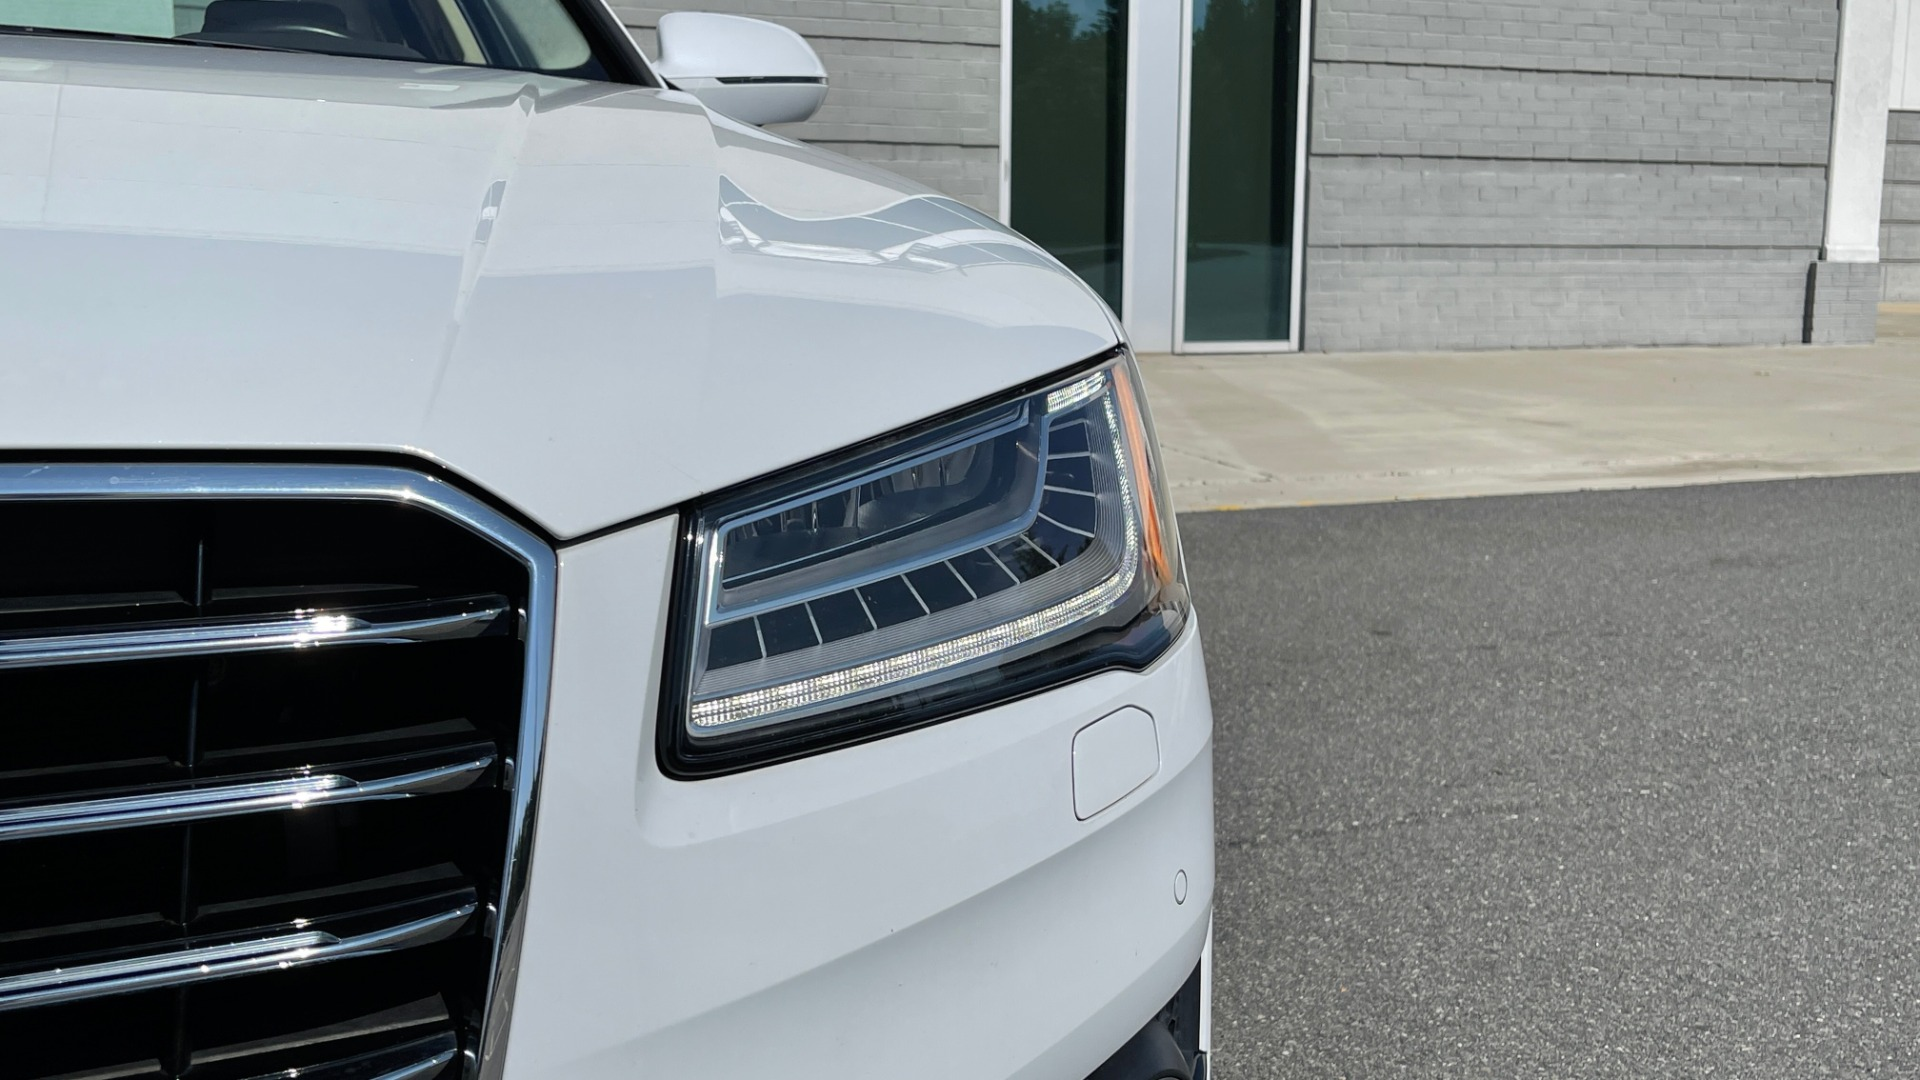 Used 2018 Audi A8 L SPORT 4.0T / EXECUTIVE PKG / NAV / BOSE / SUNROOF / REARVIEW for sale Sold at Formula Imports in Charlotte NC 28227 16